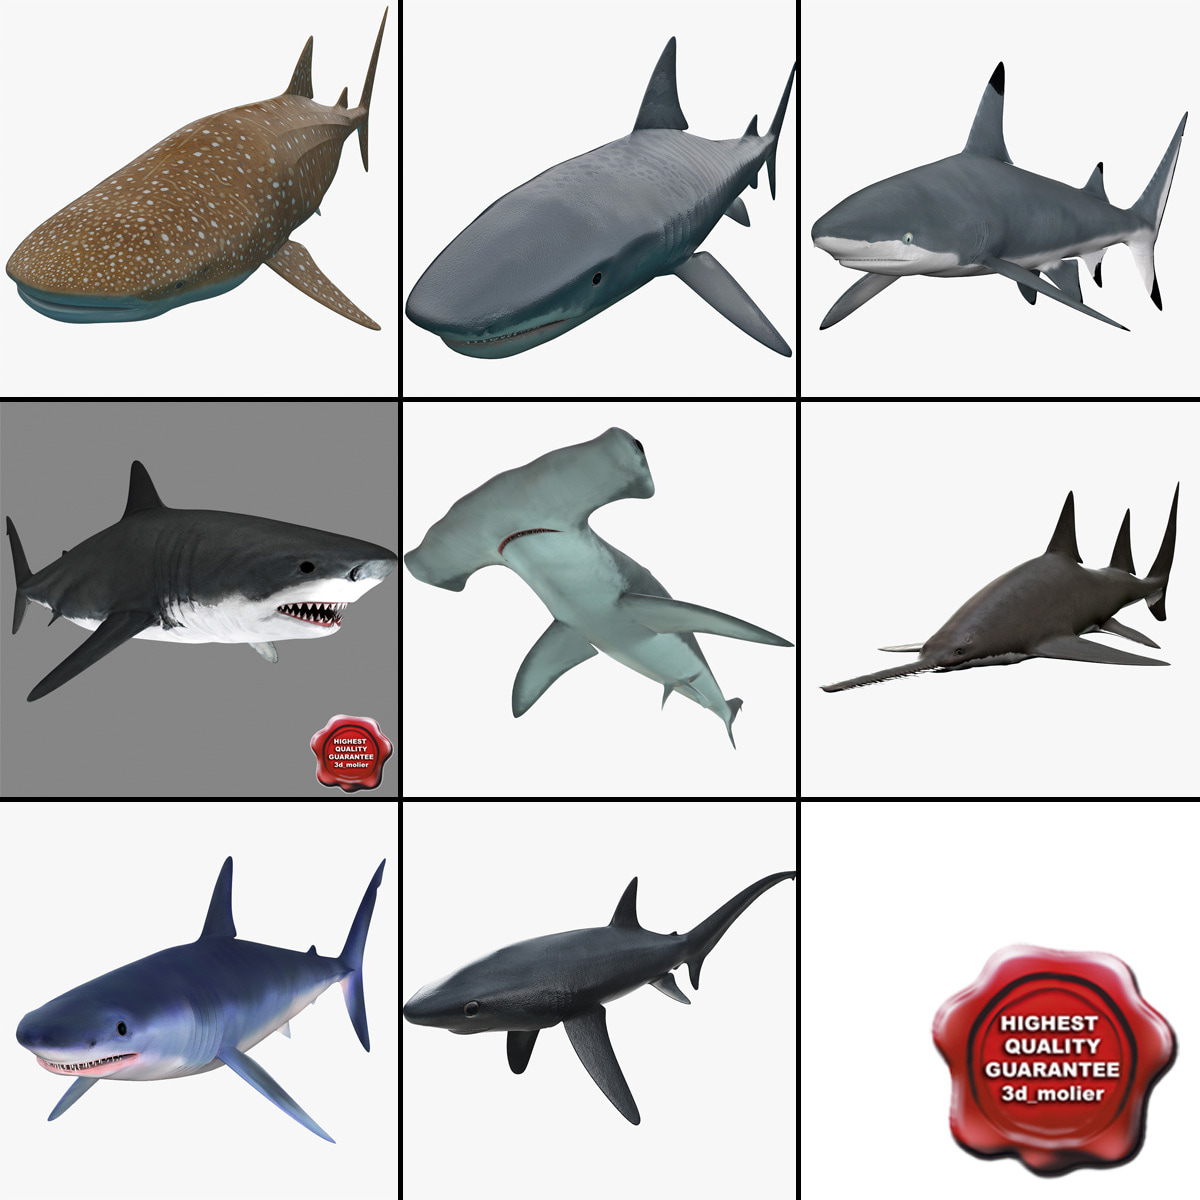 Sharks_Collection_v5_000.jpg